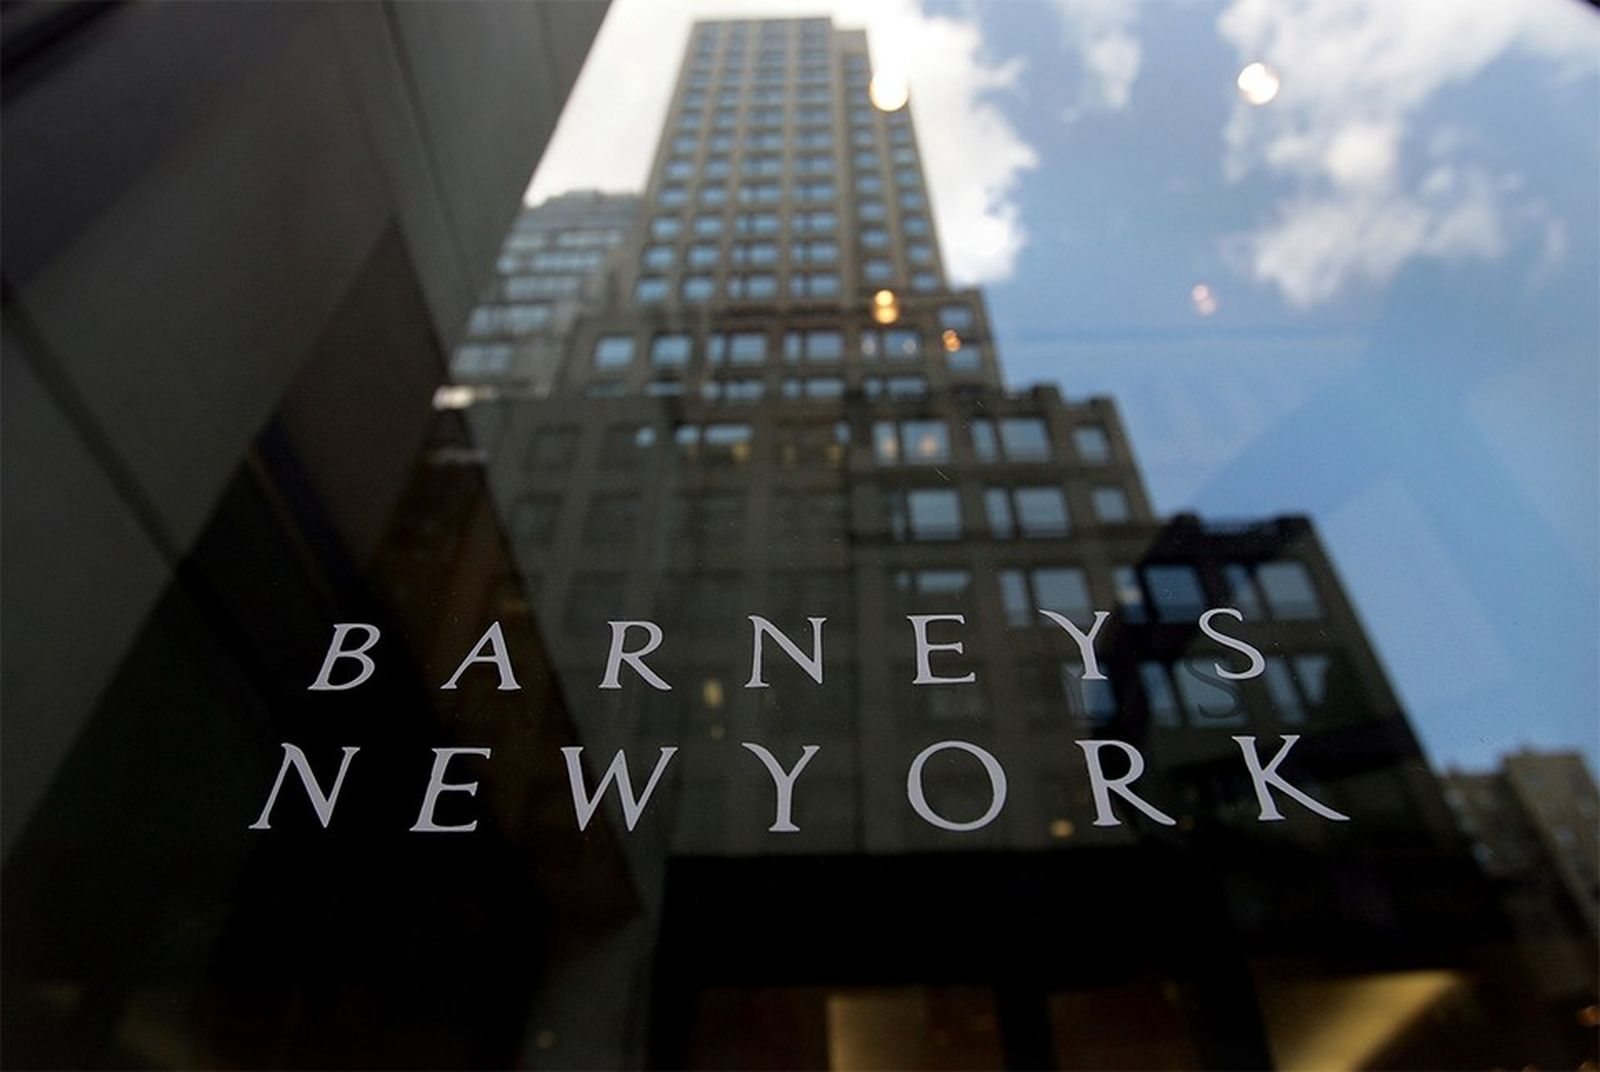 barneys new york bankruptcy not closing